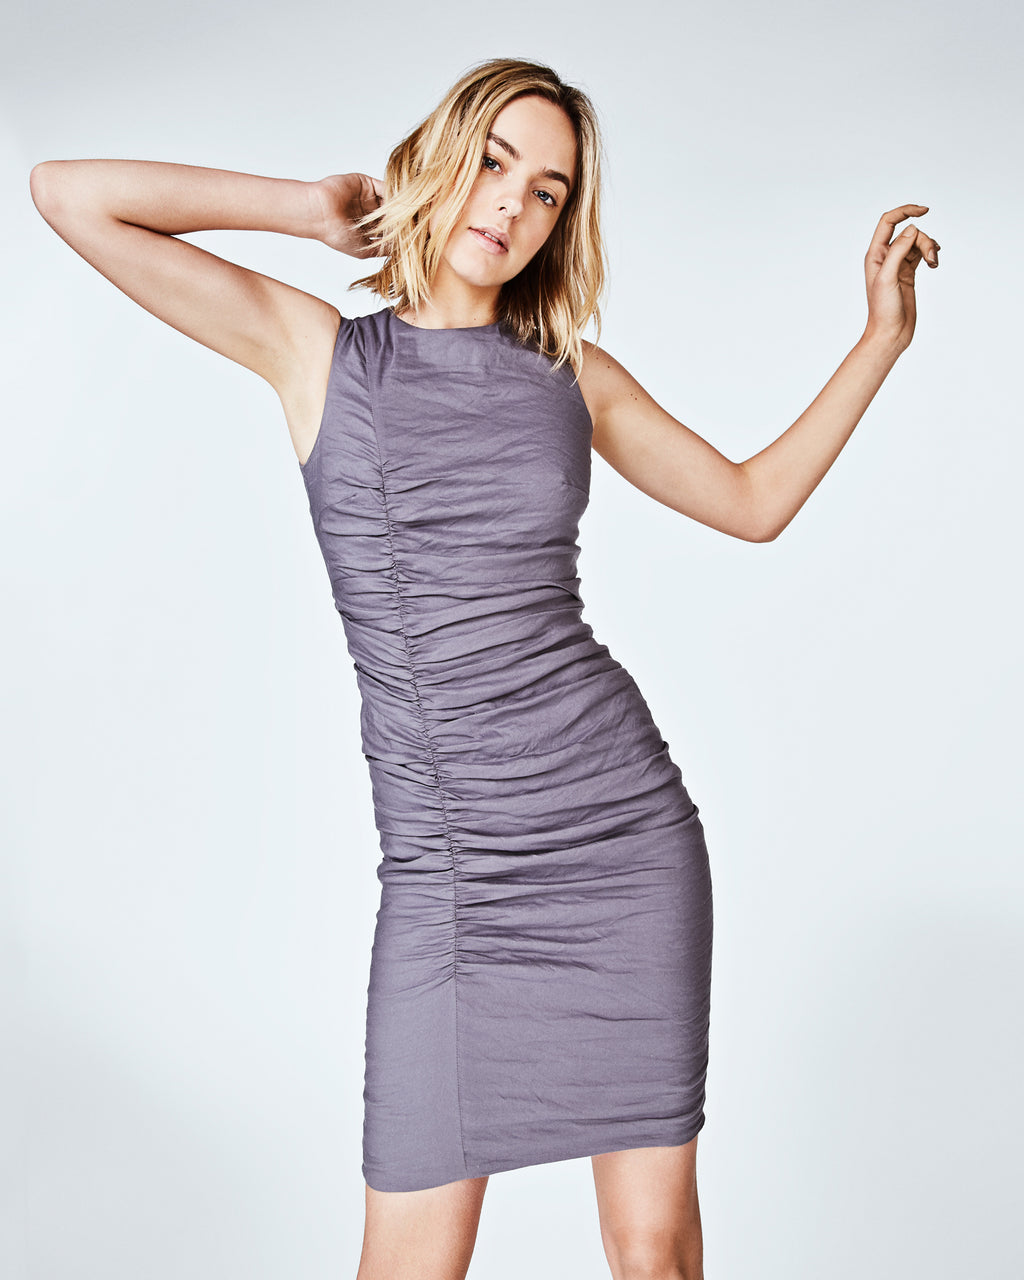 BS10162 - SOLID COTTON METAL TUCK DRESS - dresses - short - In our signature cotton metal, this sleeveless dress features a form fitting silhouette. Crafted with mindful tucking, this sheath dress is perfect for the office or a special occasion. Finished with a concealed zipper for closure and a fully lined. lined.